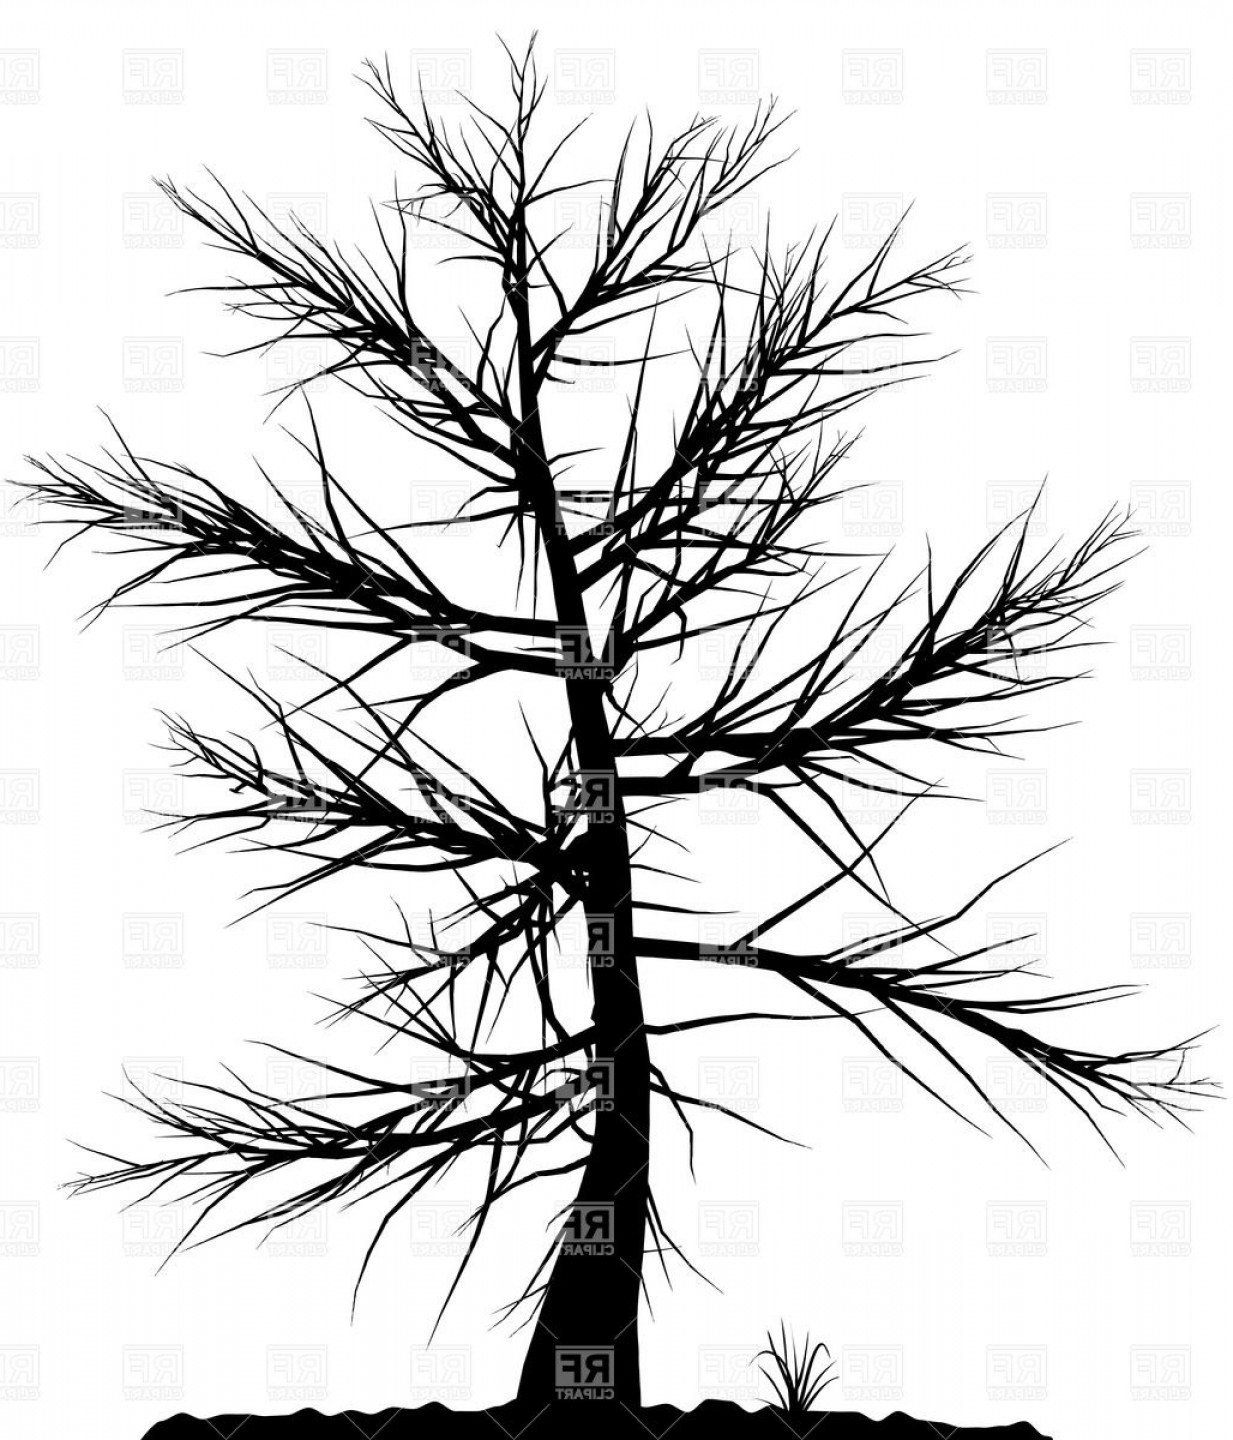 Tree Silhouette Vector Clip Art: Black Tree Silhouette On White Background Vector Clipart